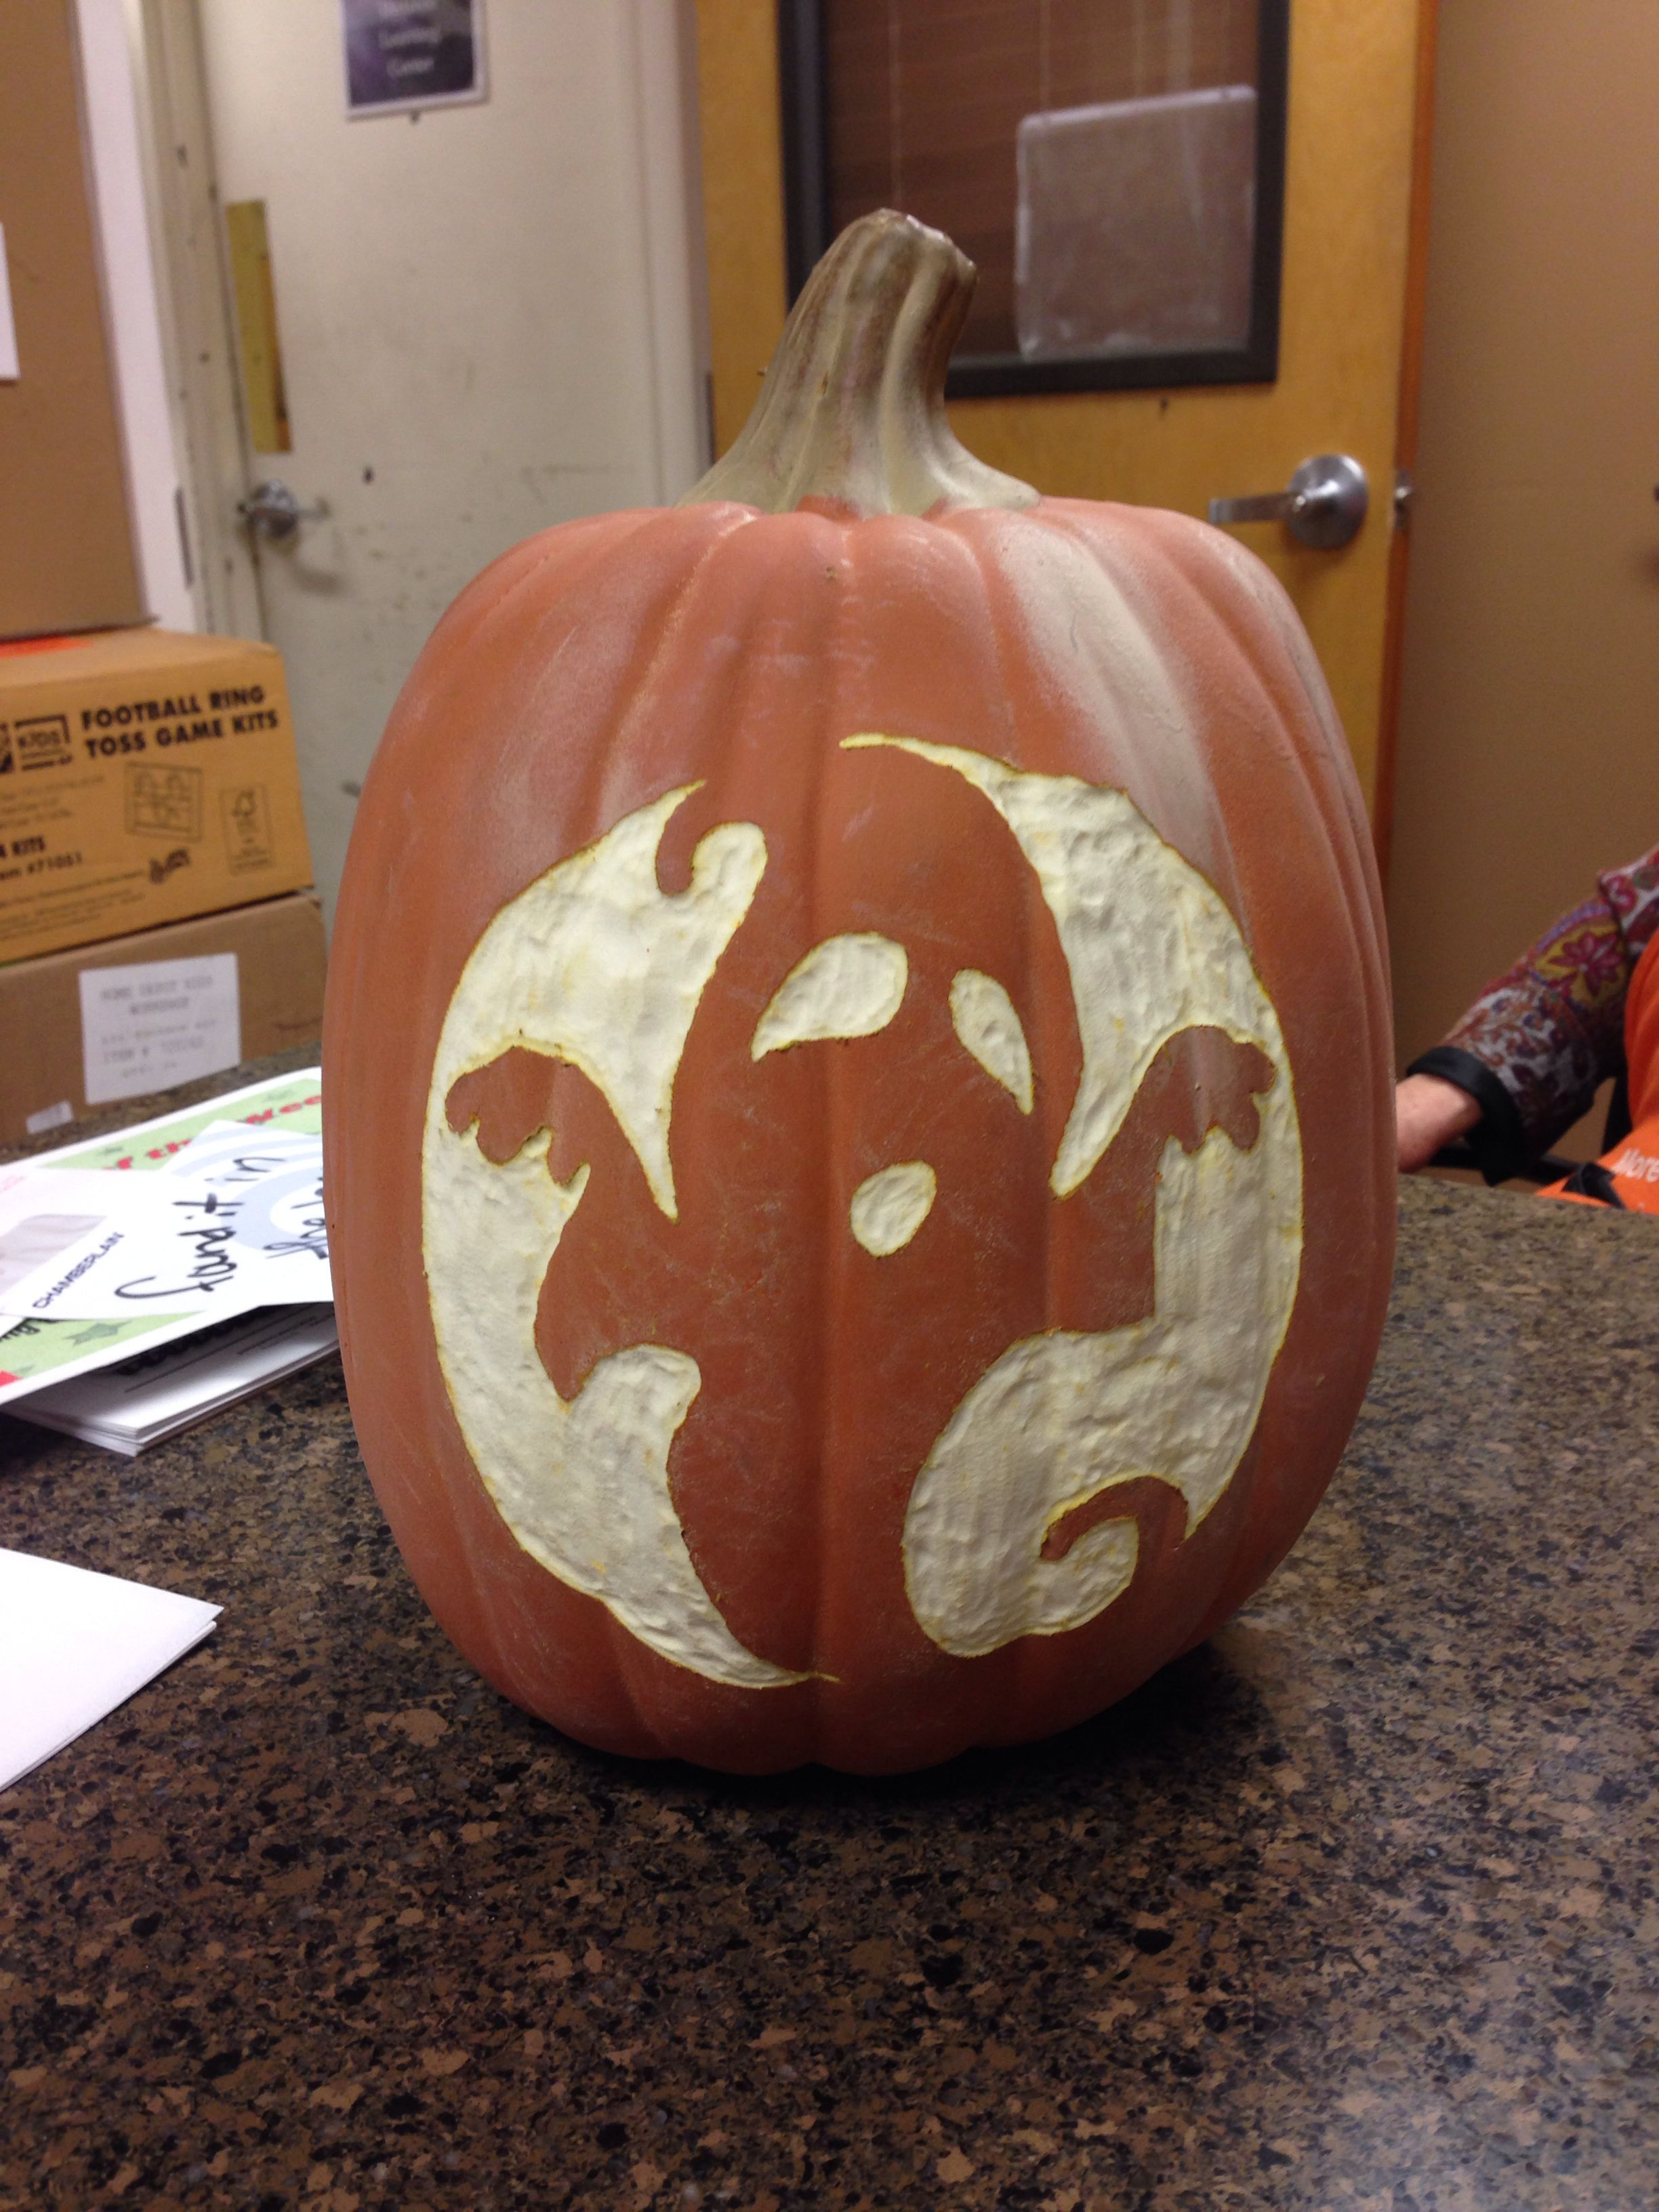 Carvable Keepsake 12in Pumpkin At The Home Depot For Only 9 98 Spray Pumpkin With Rust Oleum Glow In The Dark Spray Paint Rustoleum Pumpkin Holiday Projects